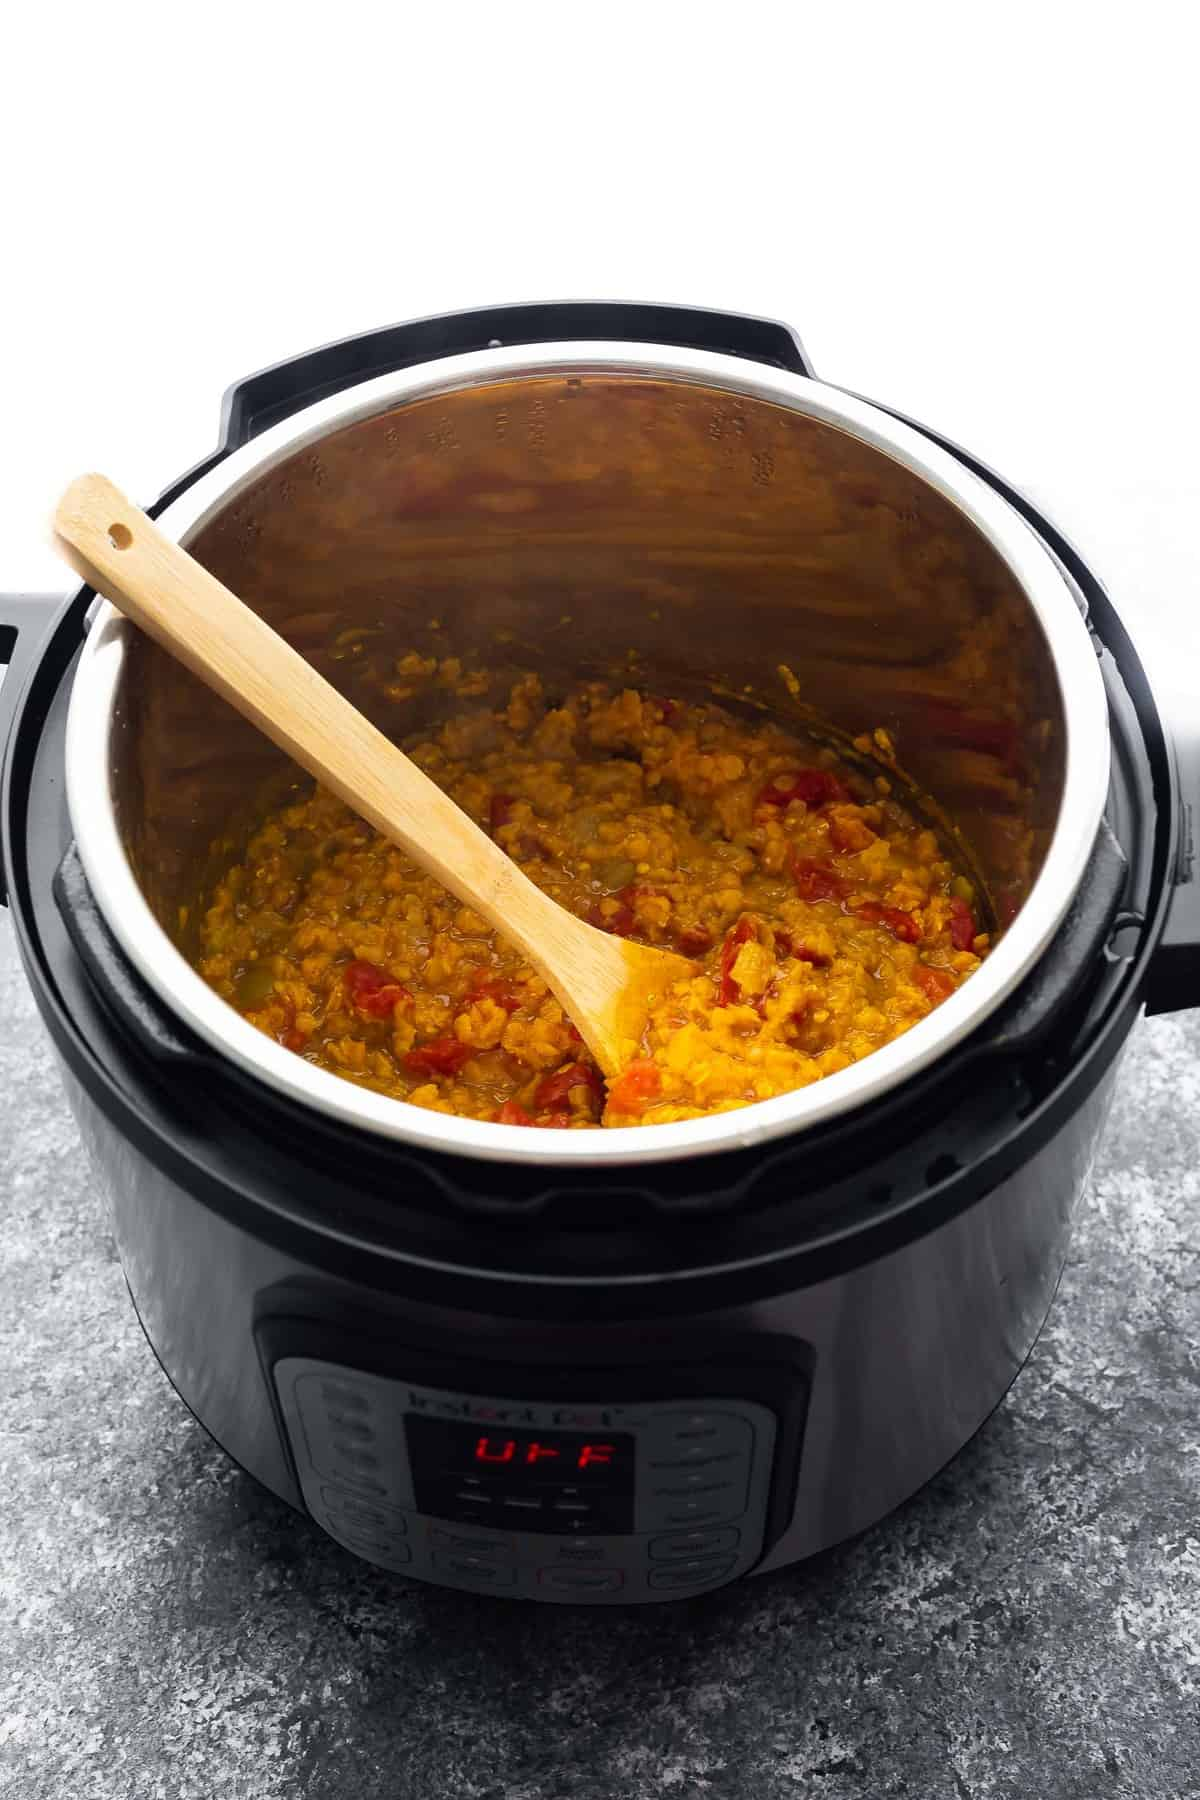 dal in the instant pot after cooking